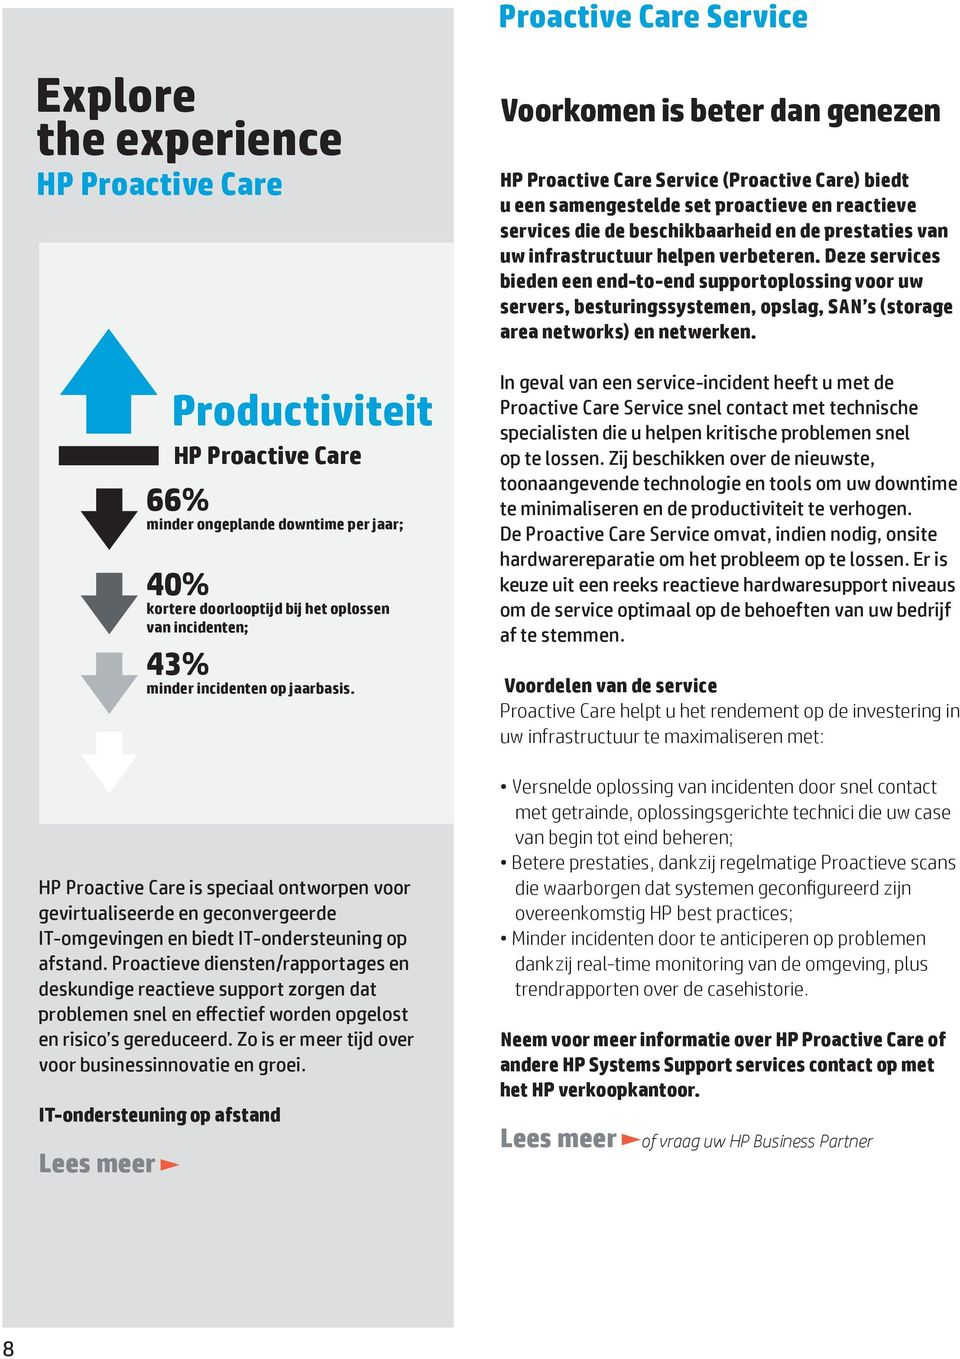 IT-ondersteuning op afstand Productiviteit HP Proactive Care 66% minder ongeplande downtime per jaar; 40% kortere doorlooptijd bij het oplossen van incidenten; 43% minder incidenten op jaarbasis.